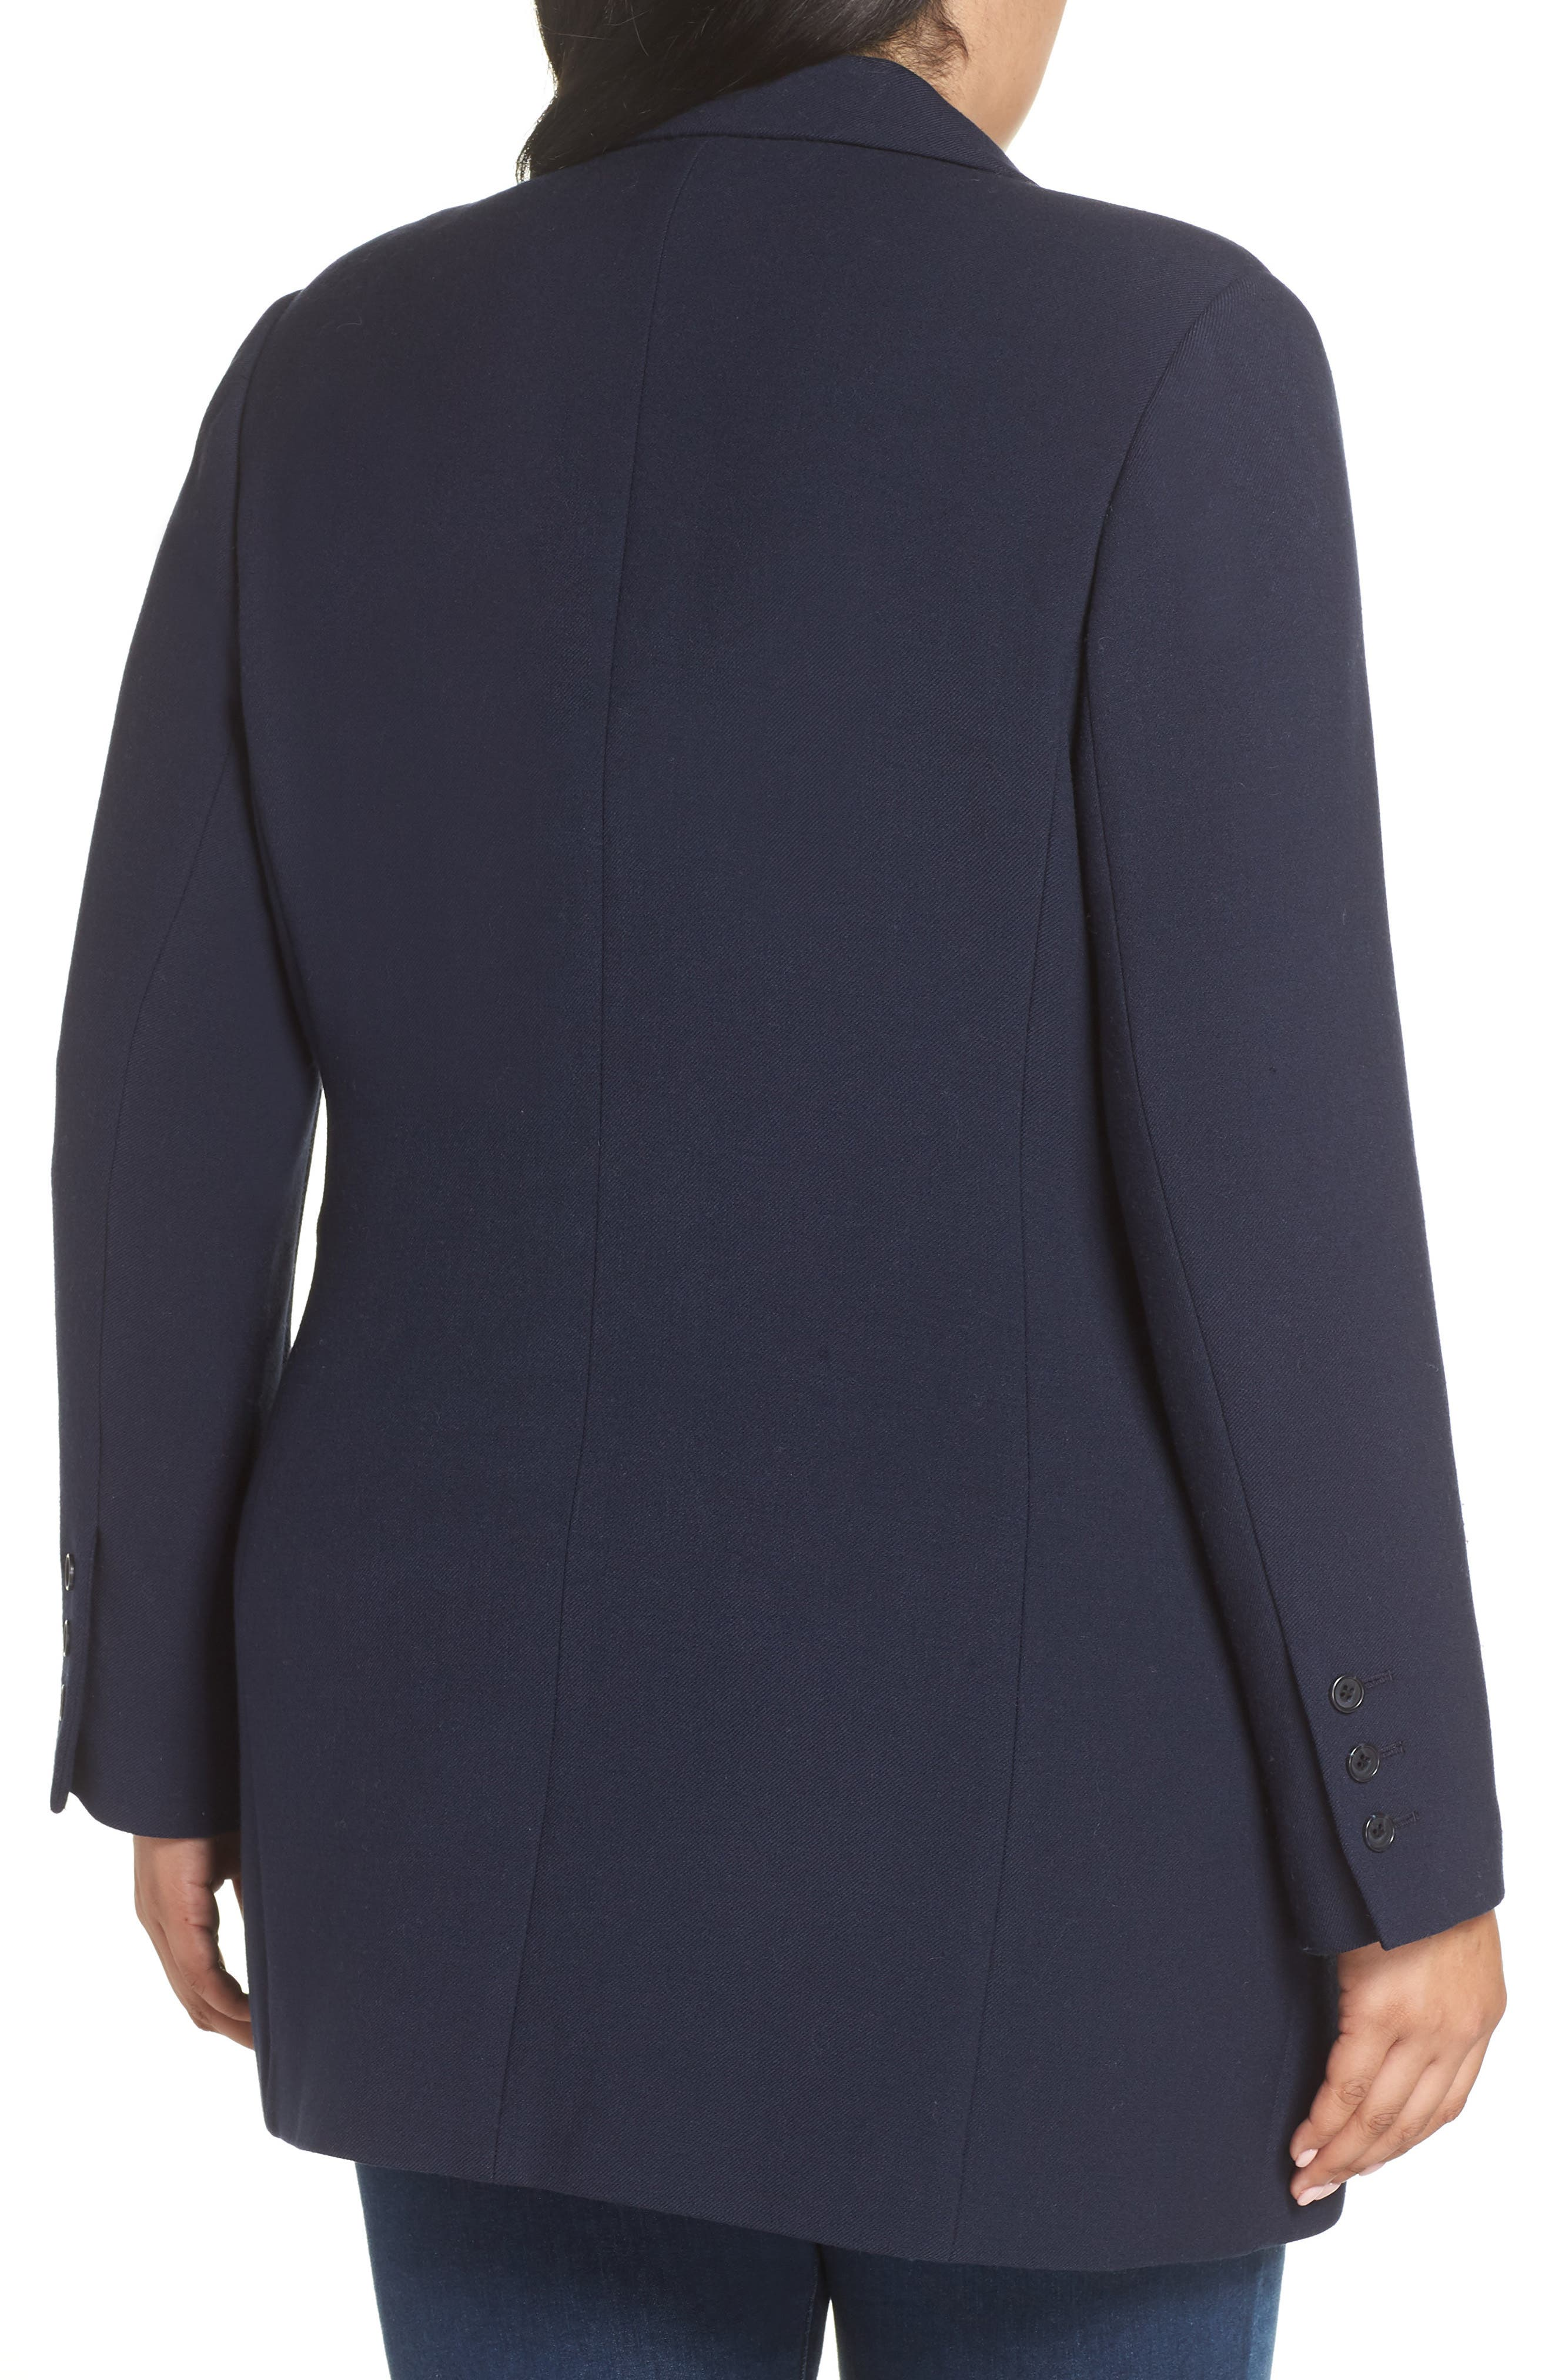 x Atlantic-Pacific Menswear Double Breasted Blazer,                             Alternate thumbnail 2, color,                             NAVY